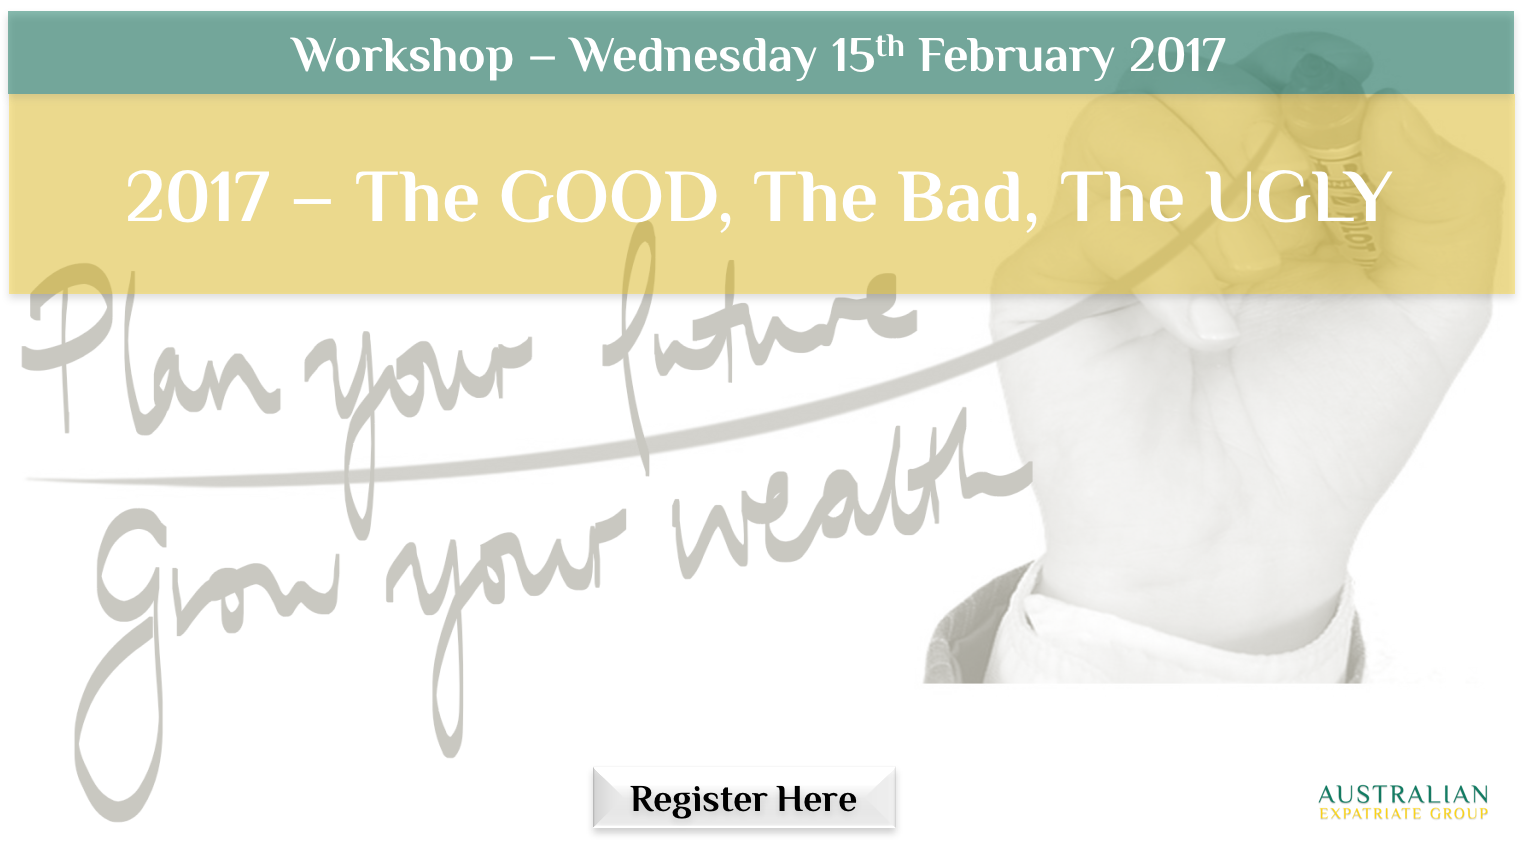 2017 - The Good, The Bad, The Ugly - Australian Expatriate Group - Seminar